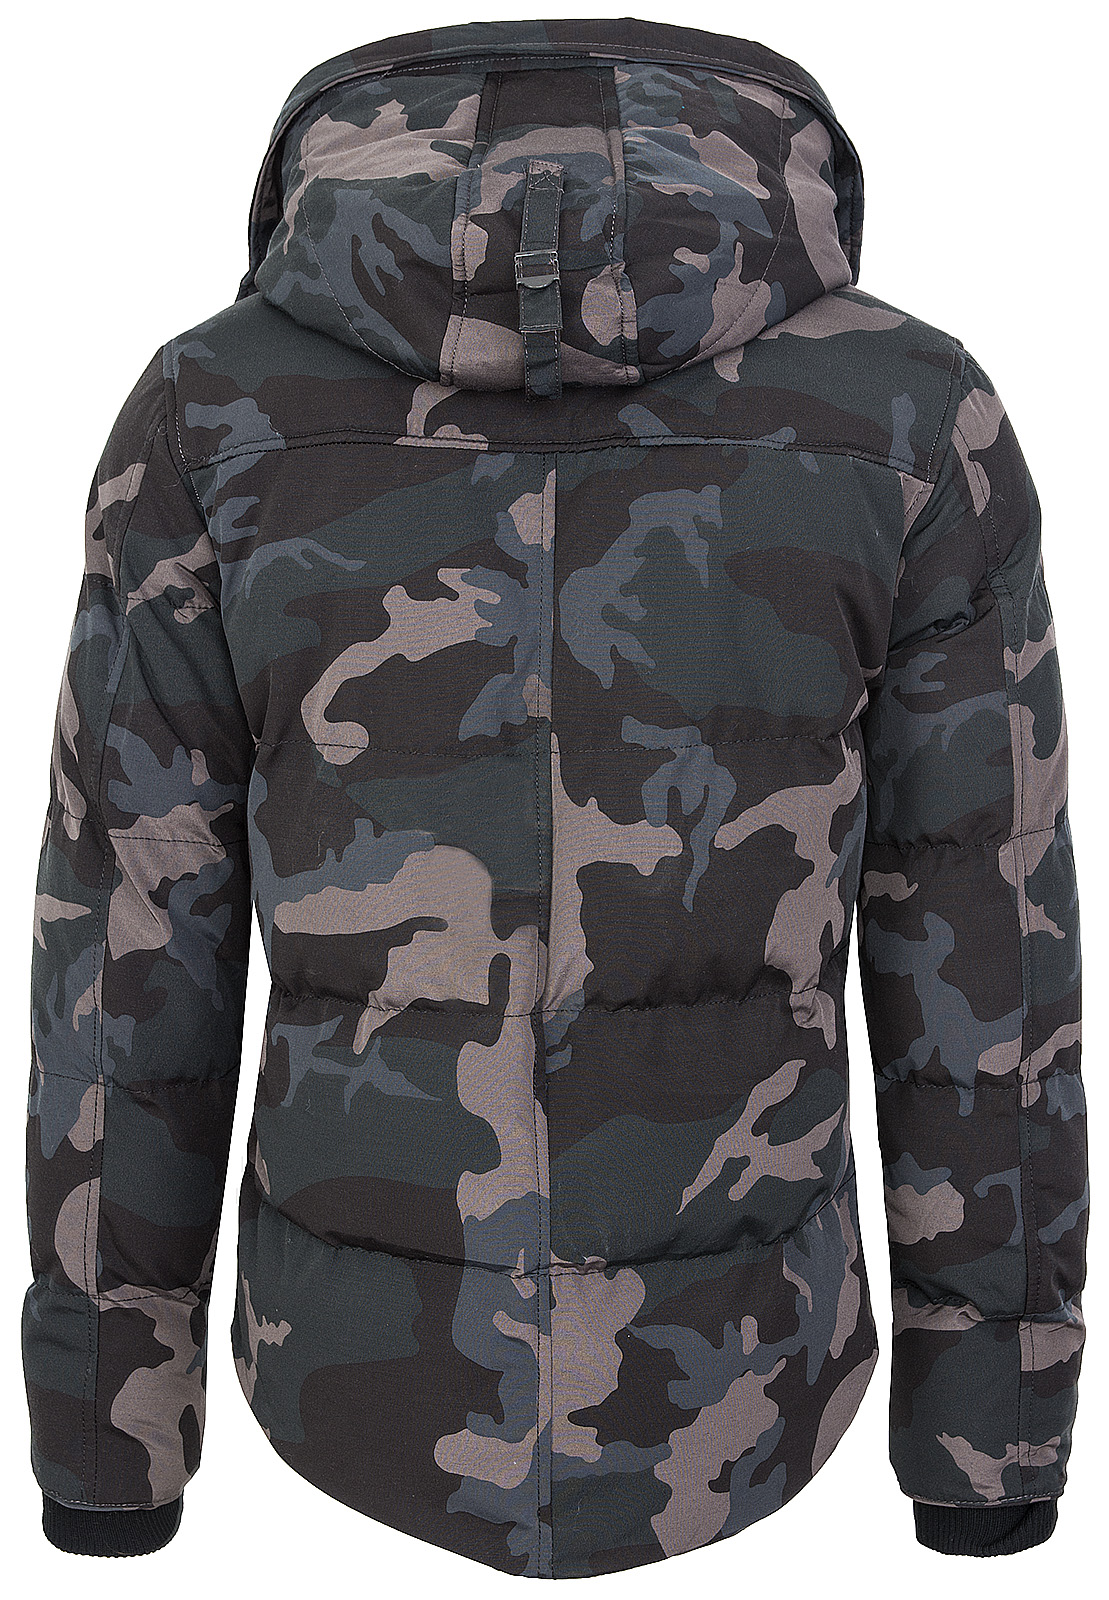 herren outdoor winterjacke camouflage jacke jagdjacke. Black Bedroom Furniture Sets. Home Design Ideas